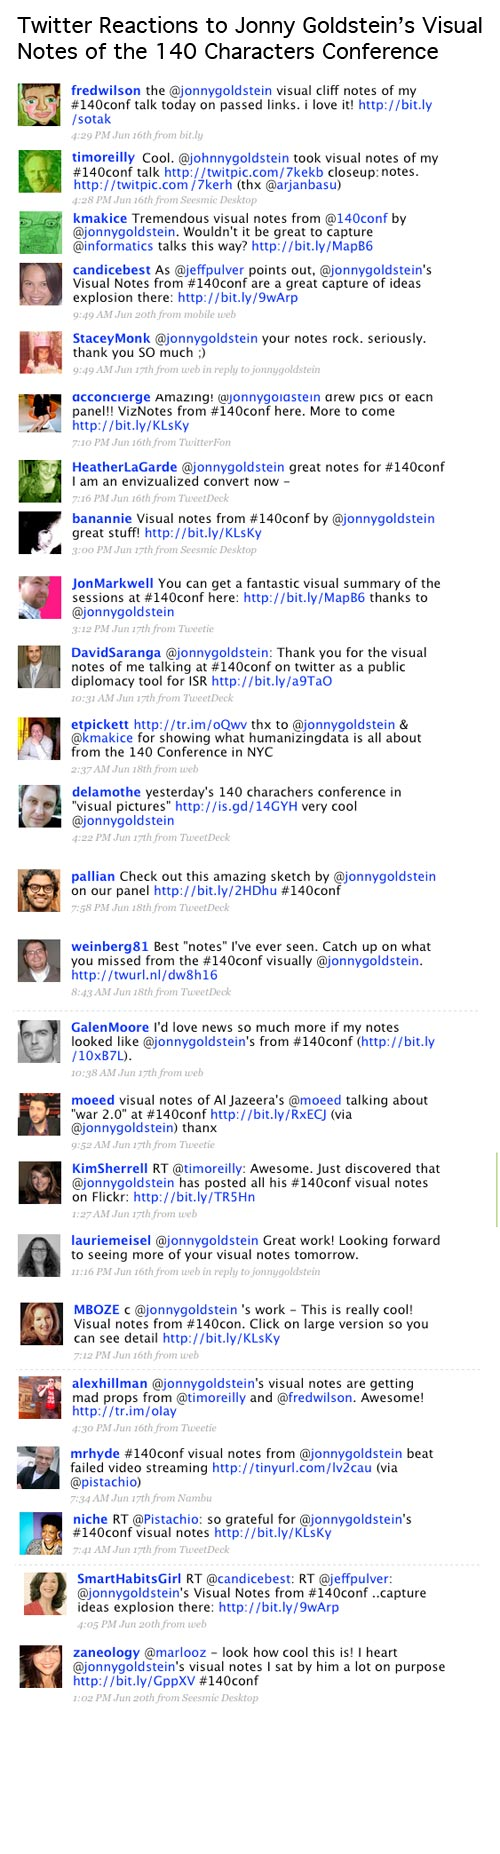 Twitter reaction to Jonny Goldstein's visual notes at 140 Characters Conference